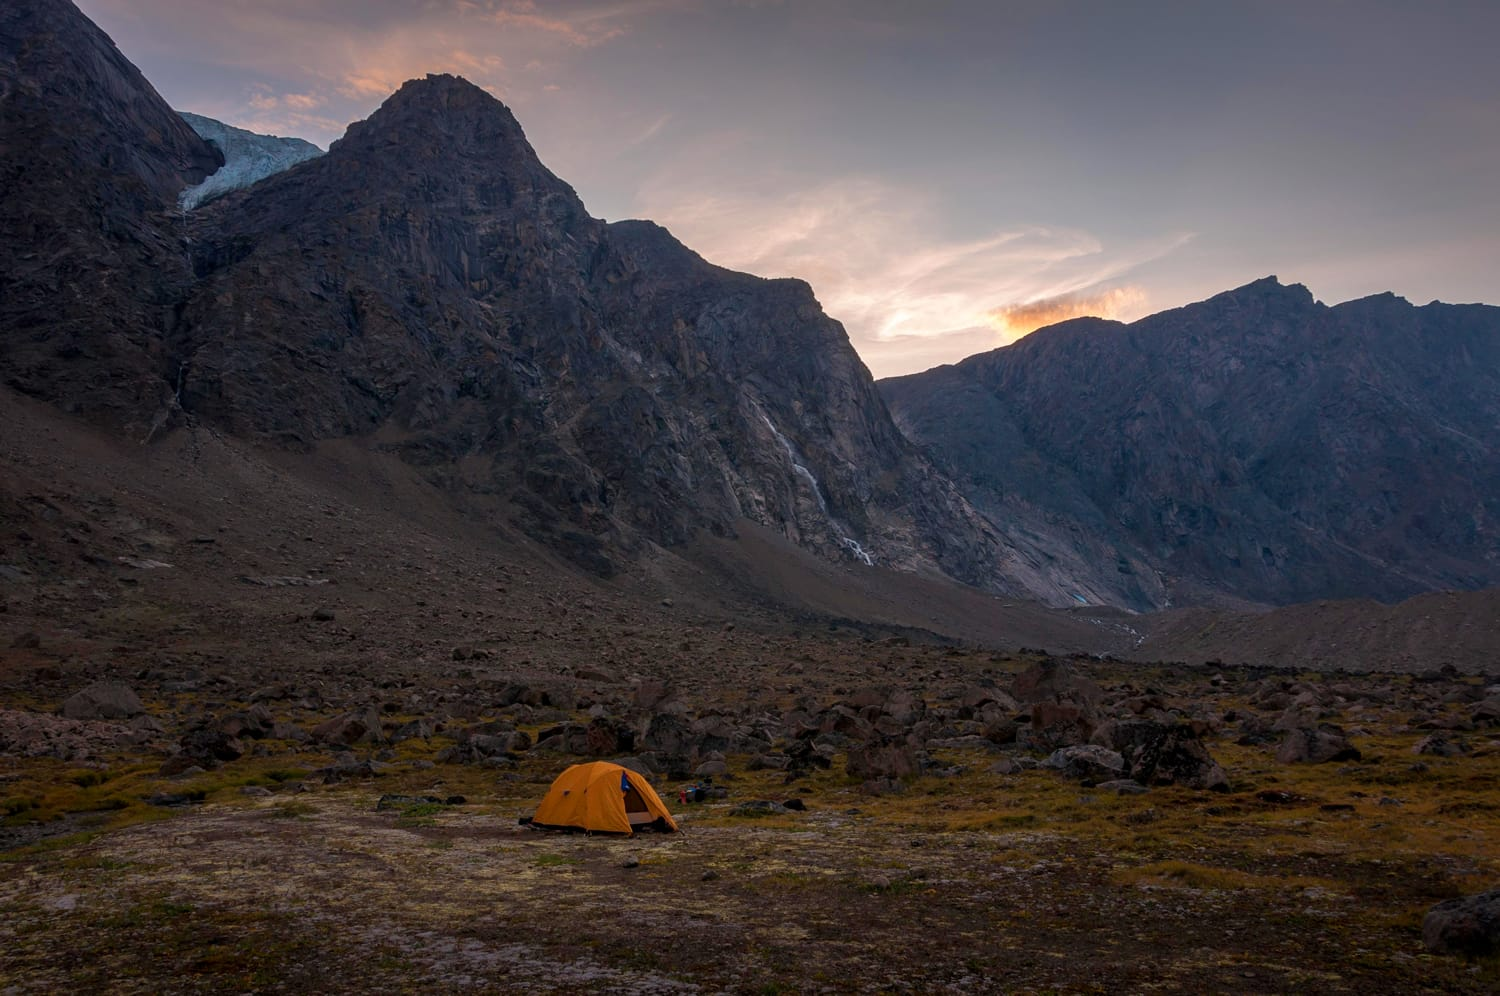 Base camping in Auyuittuq National Park scenery, Nunavut, Canada